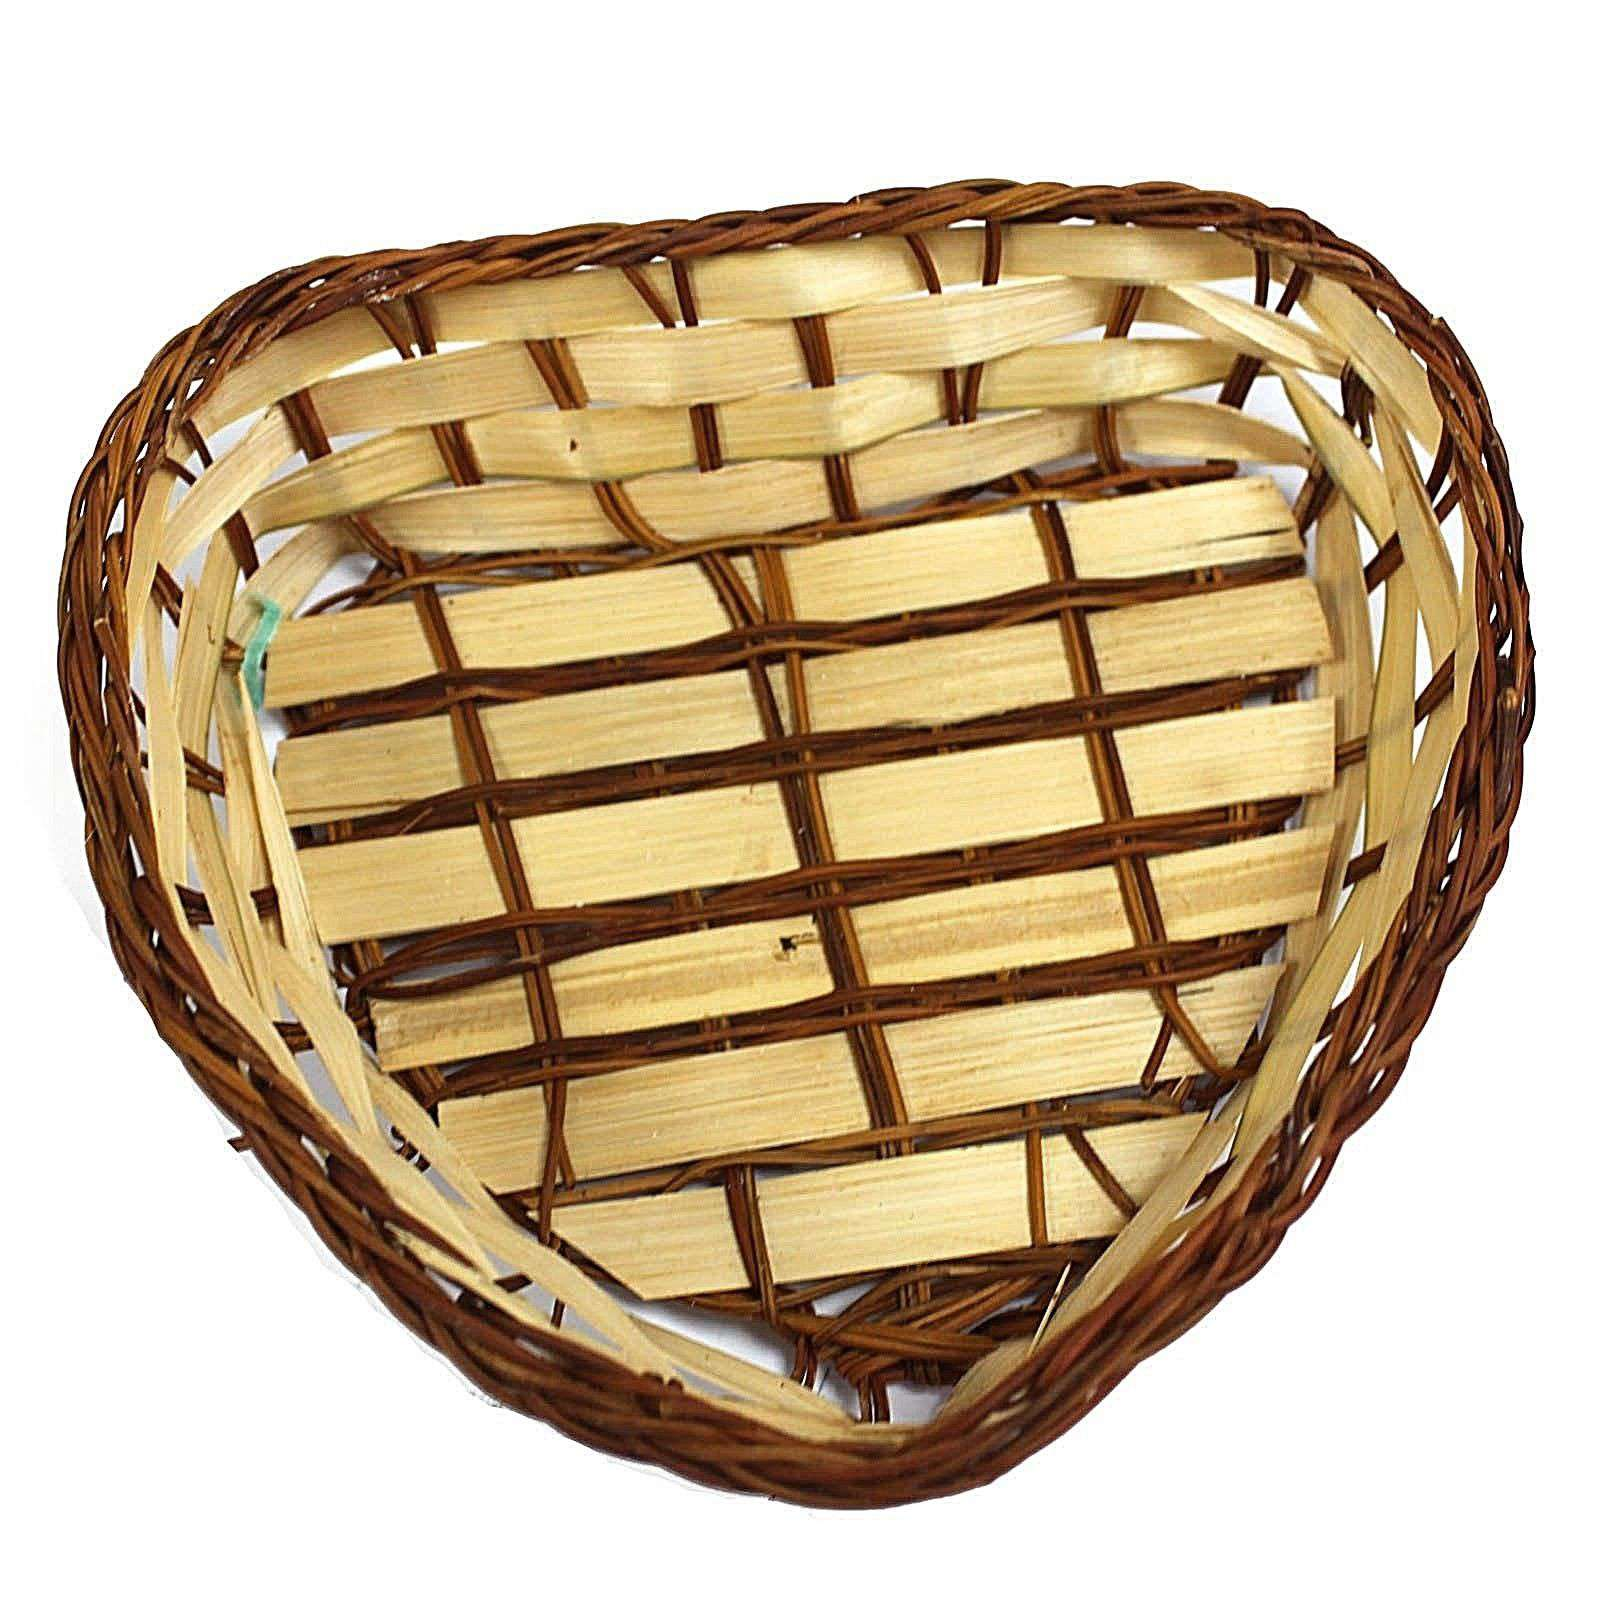 Heart Shape Baskets 15 x 17 x 5 cm - Pasal